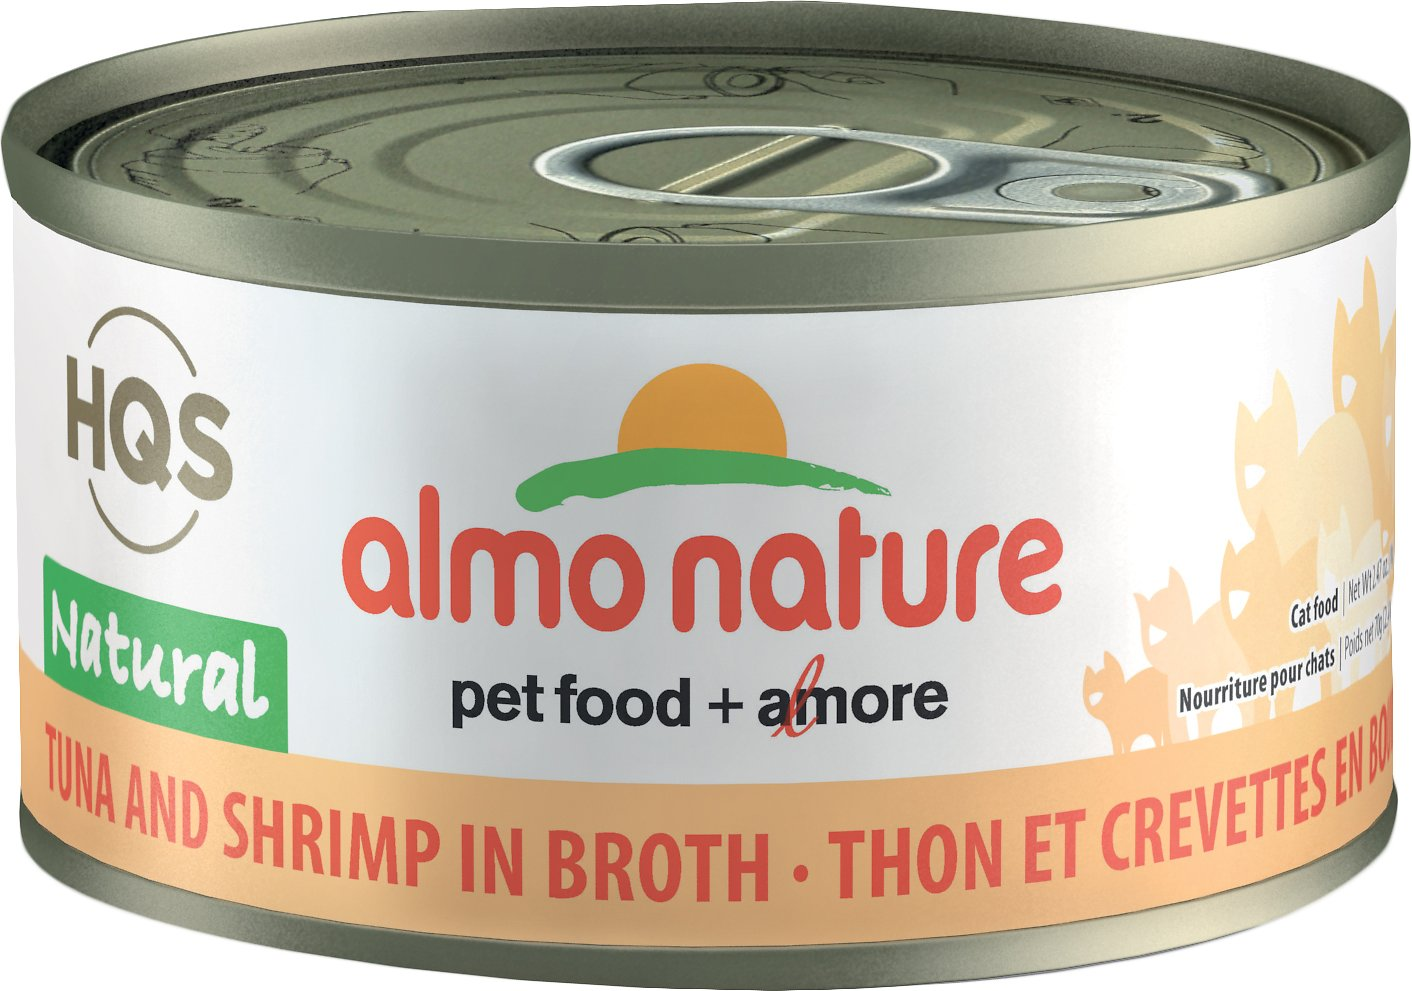 Almo Nature HQS Natural Tuna & Shrimp in Broth Grain-Free Canned Cat Food, 2.47-oz